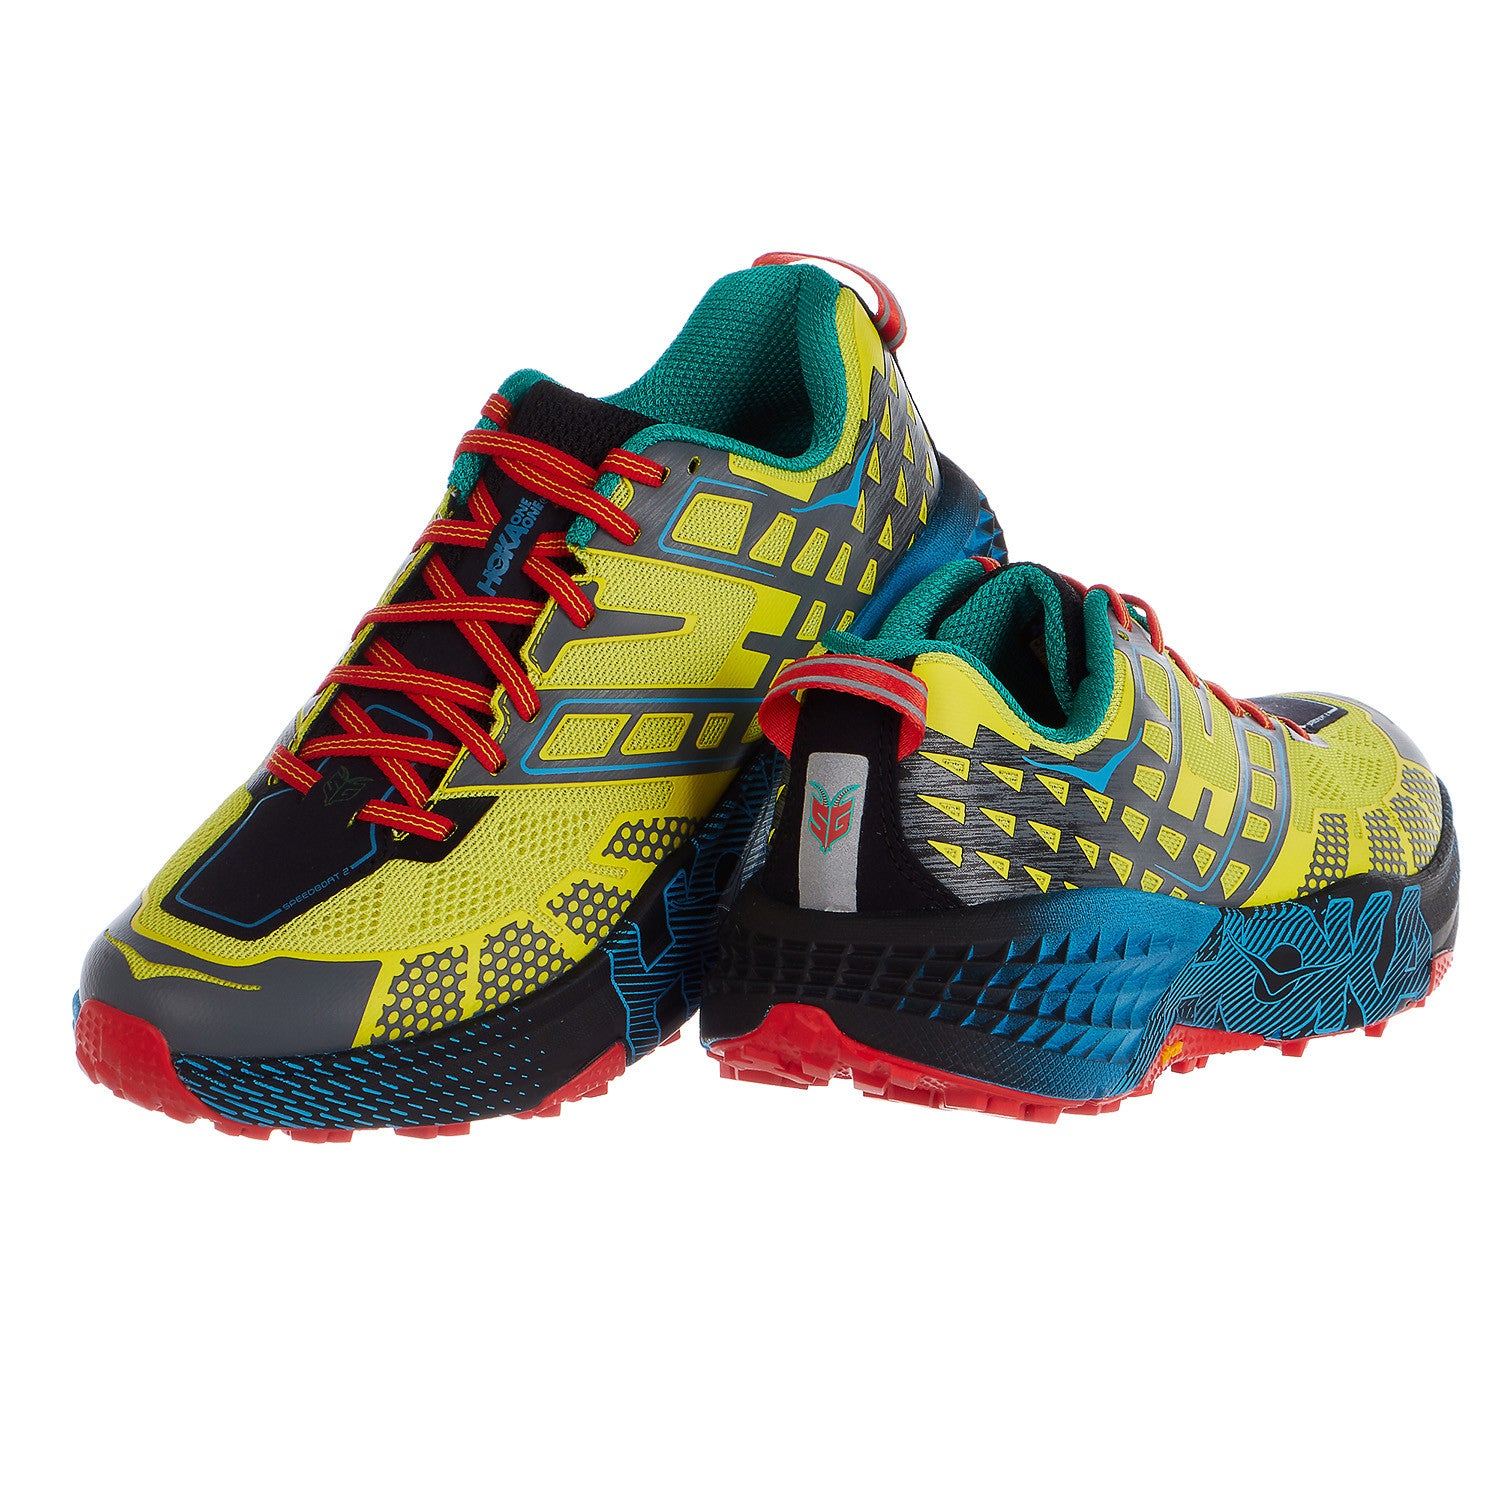 af6fdaf69da6 Hoka One One Speedgoat 2 Running Shoes - Men s - Shoplifestyle